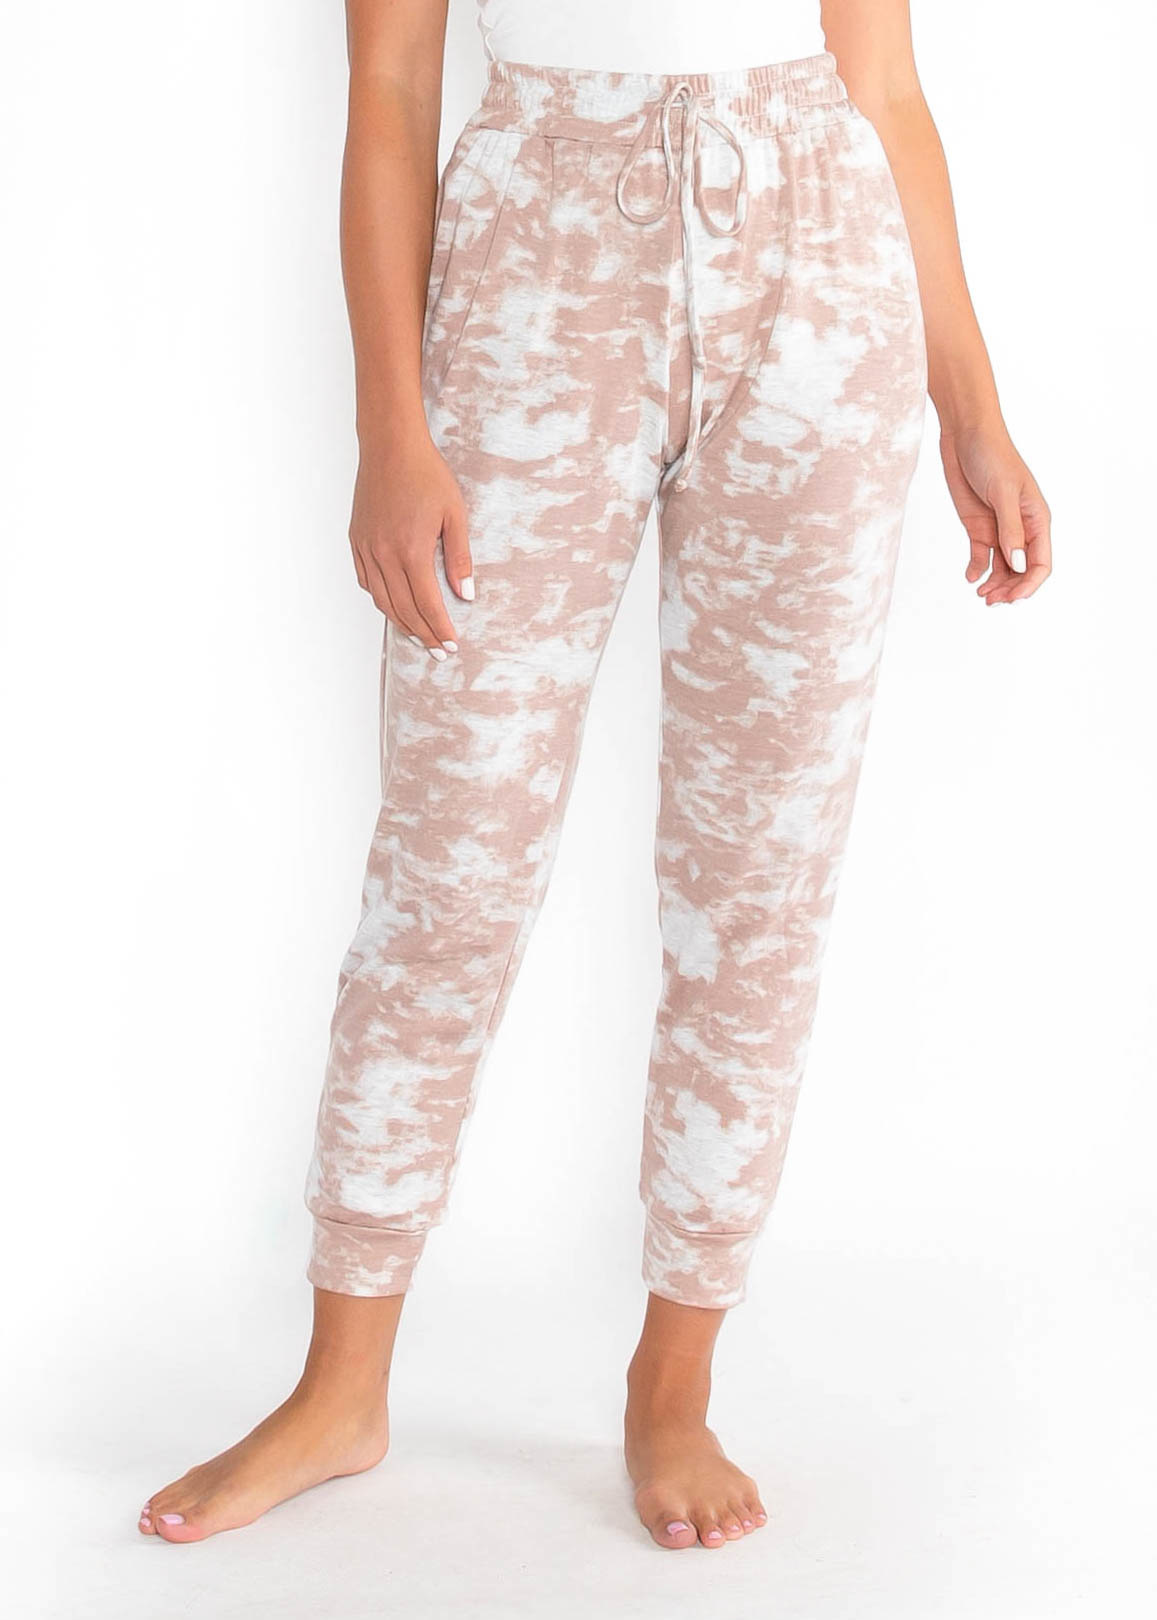 FADED DREAMS TIE DYE JOGGERS